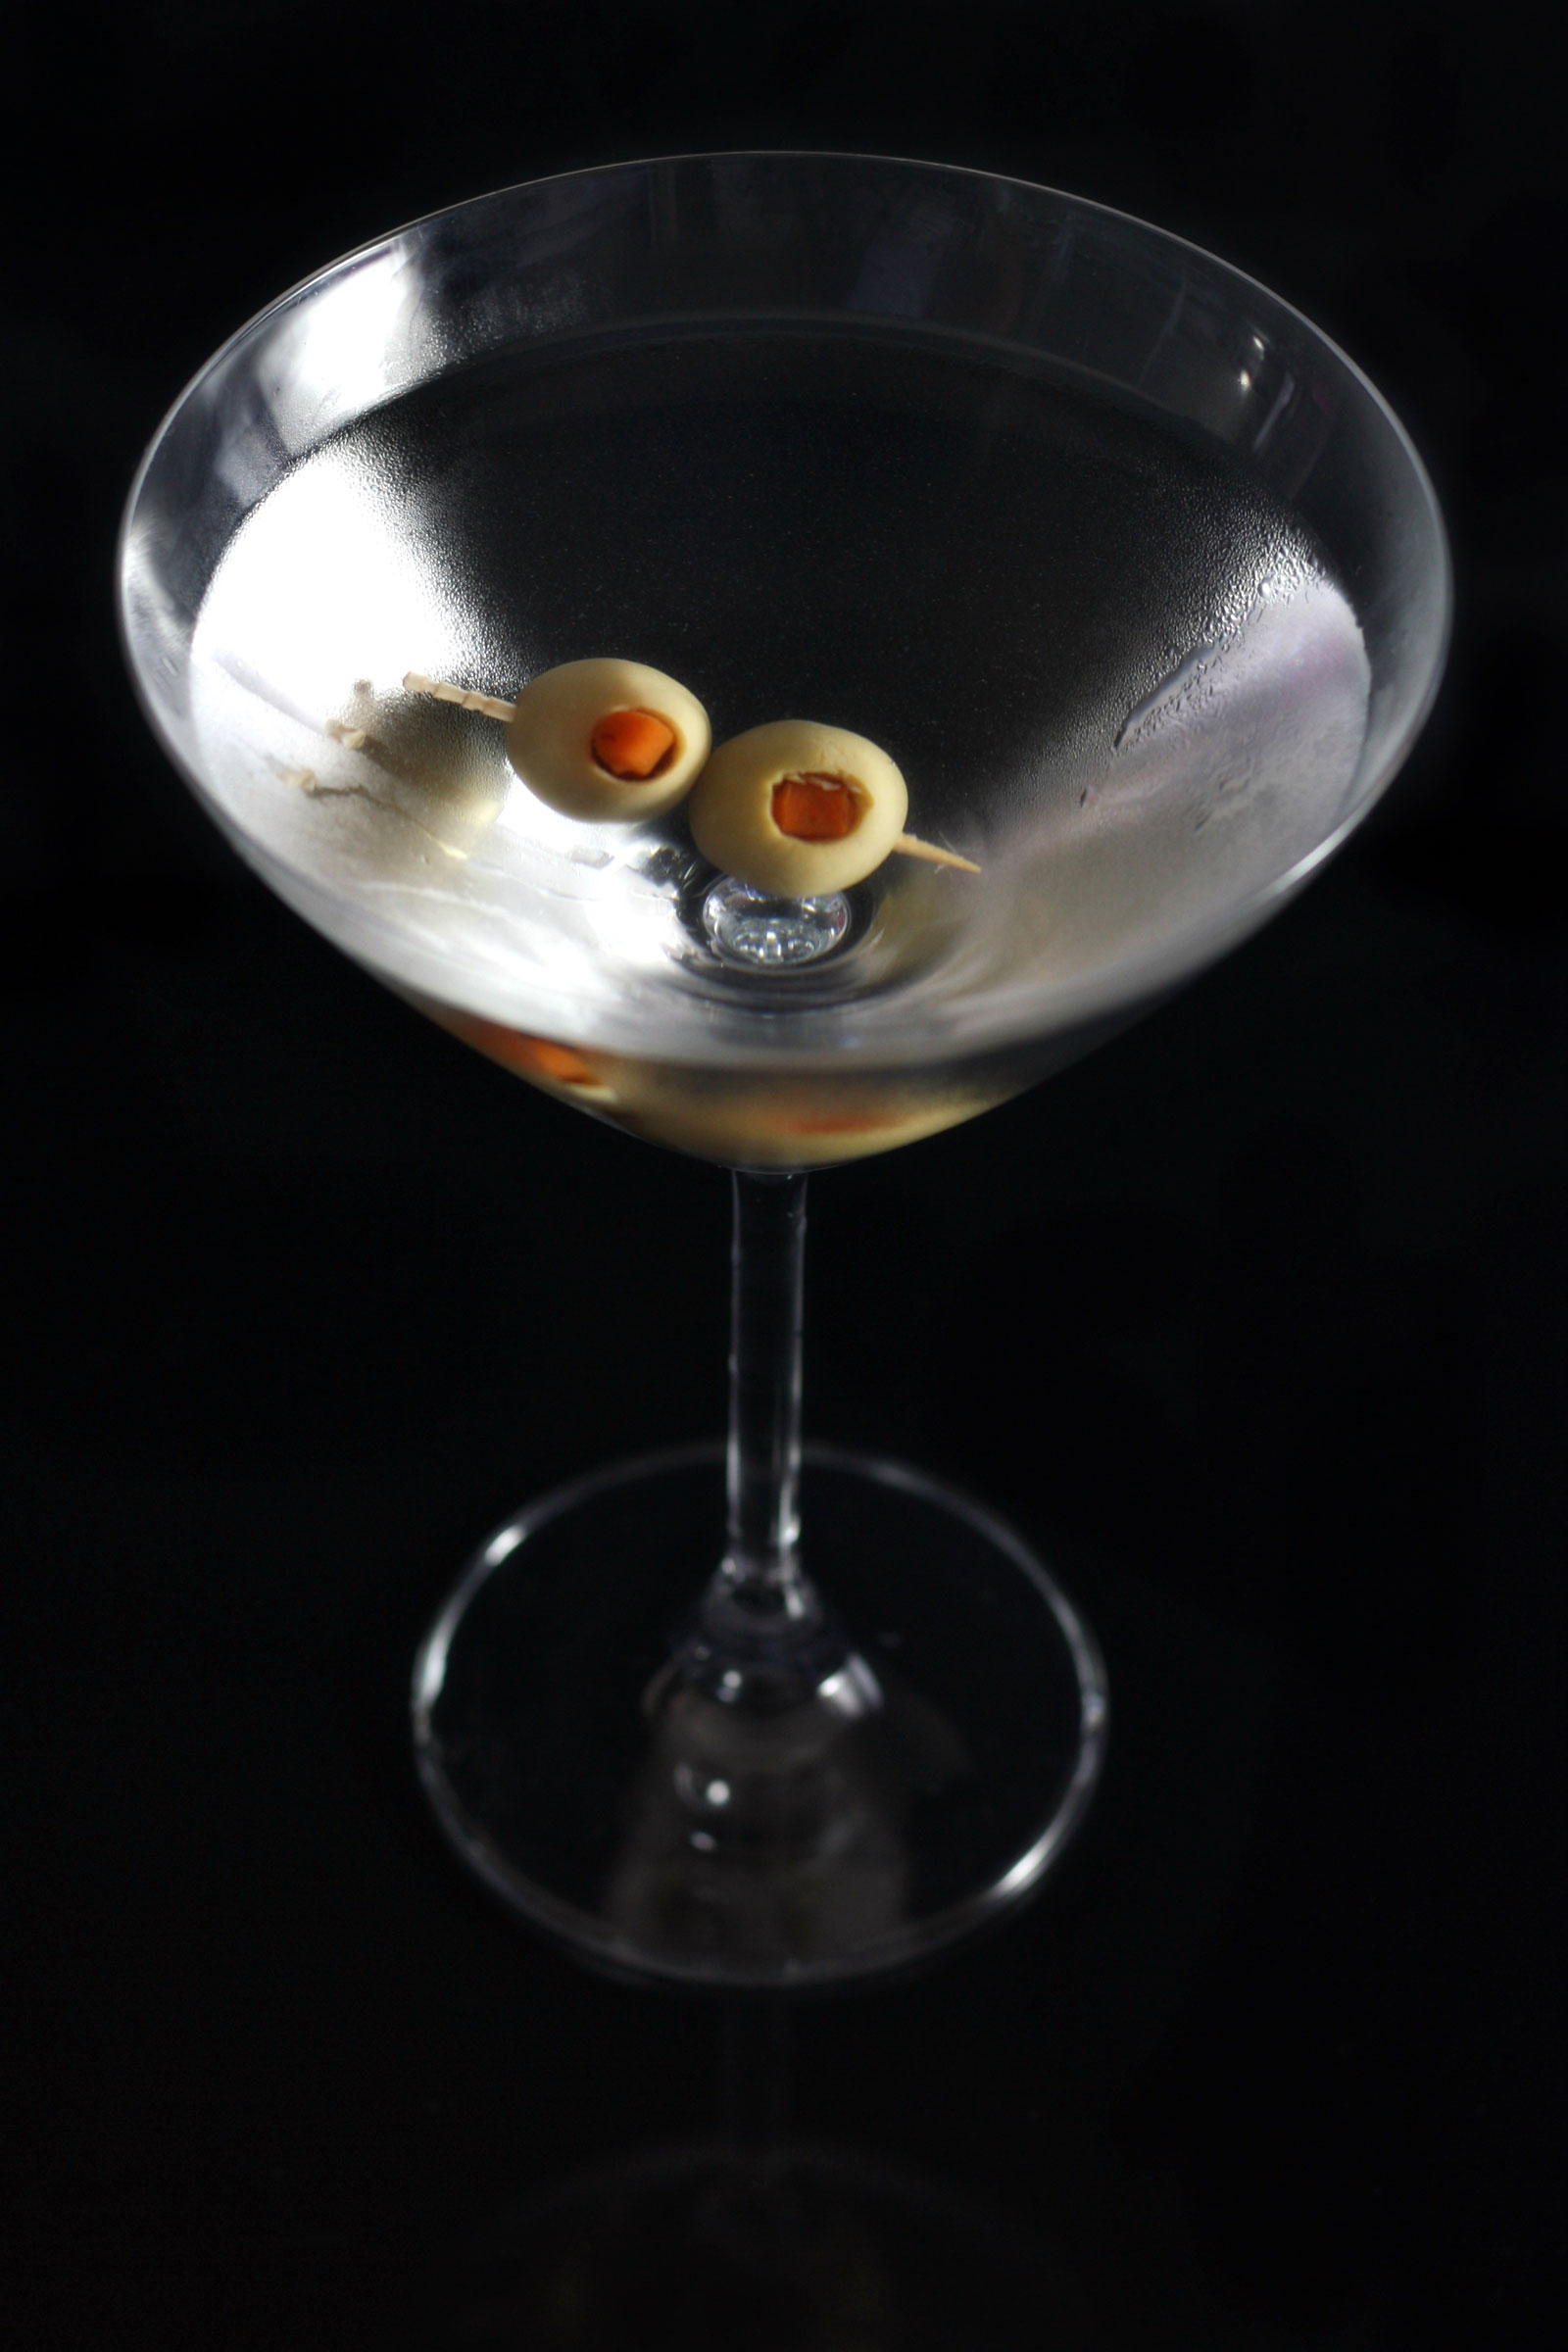 Martini with two olives